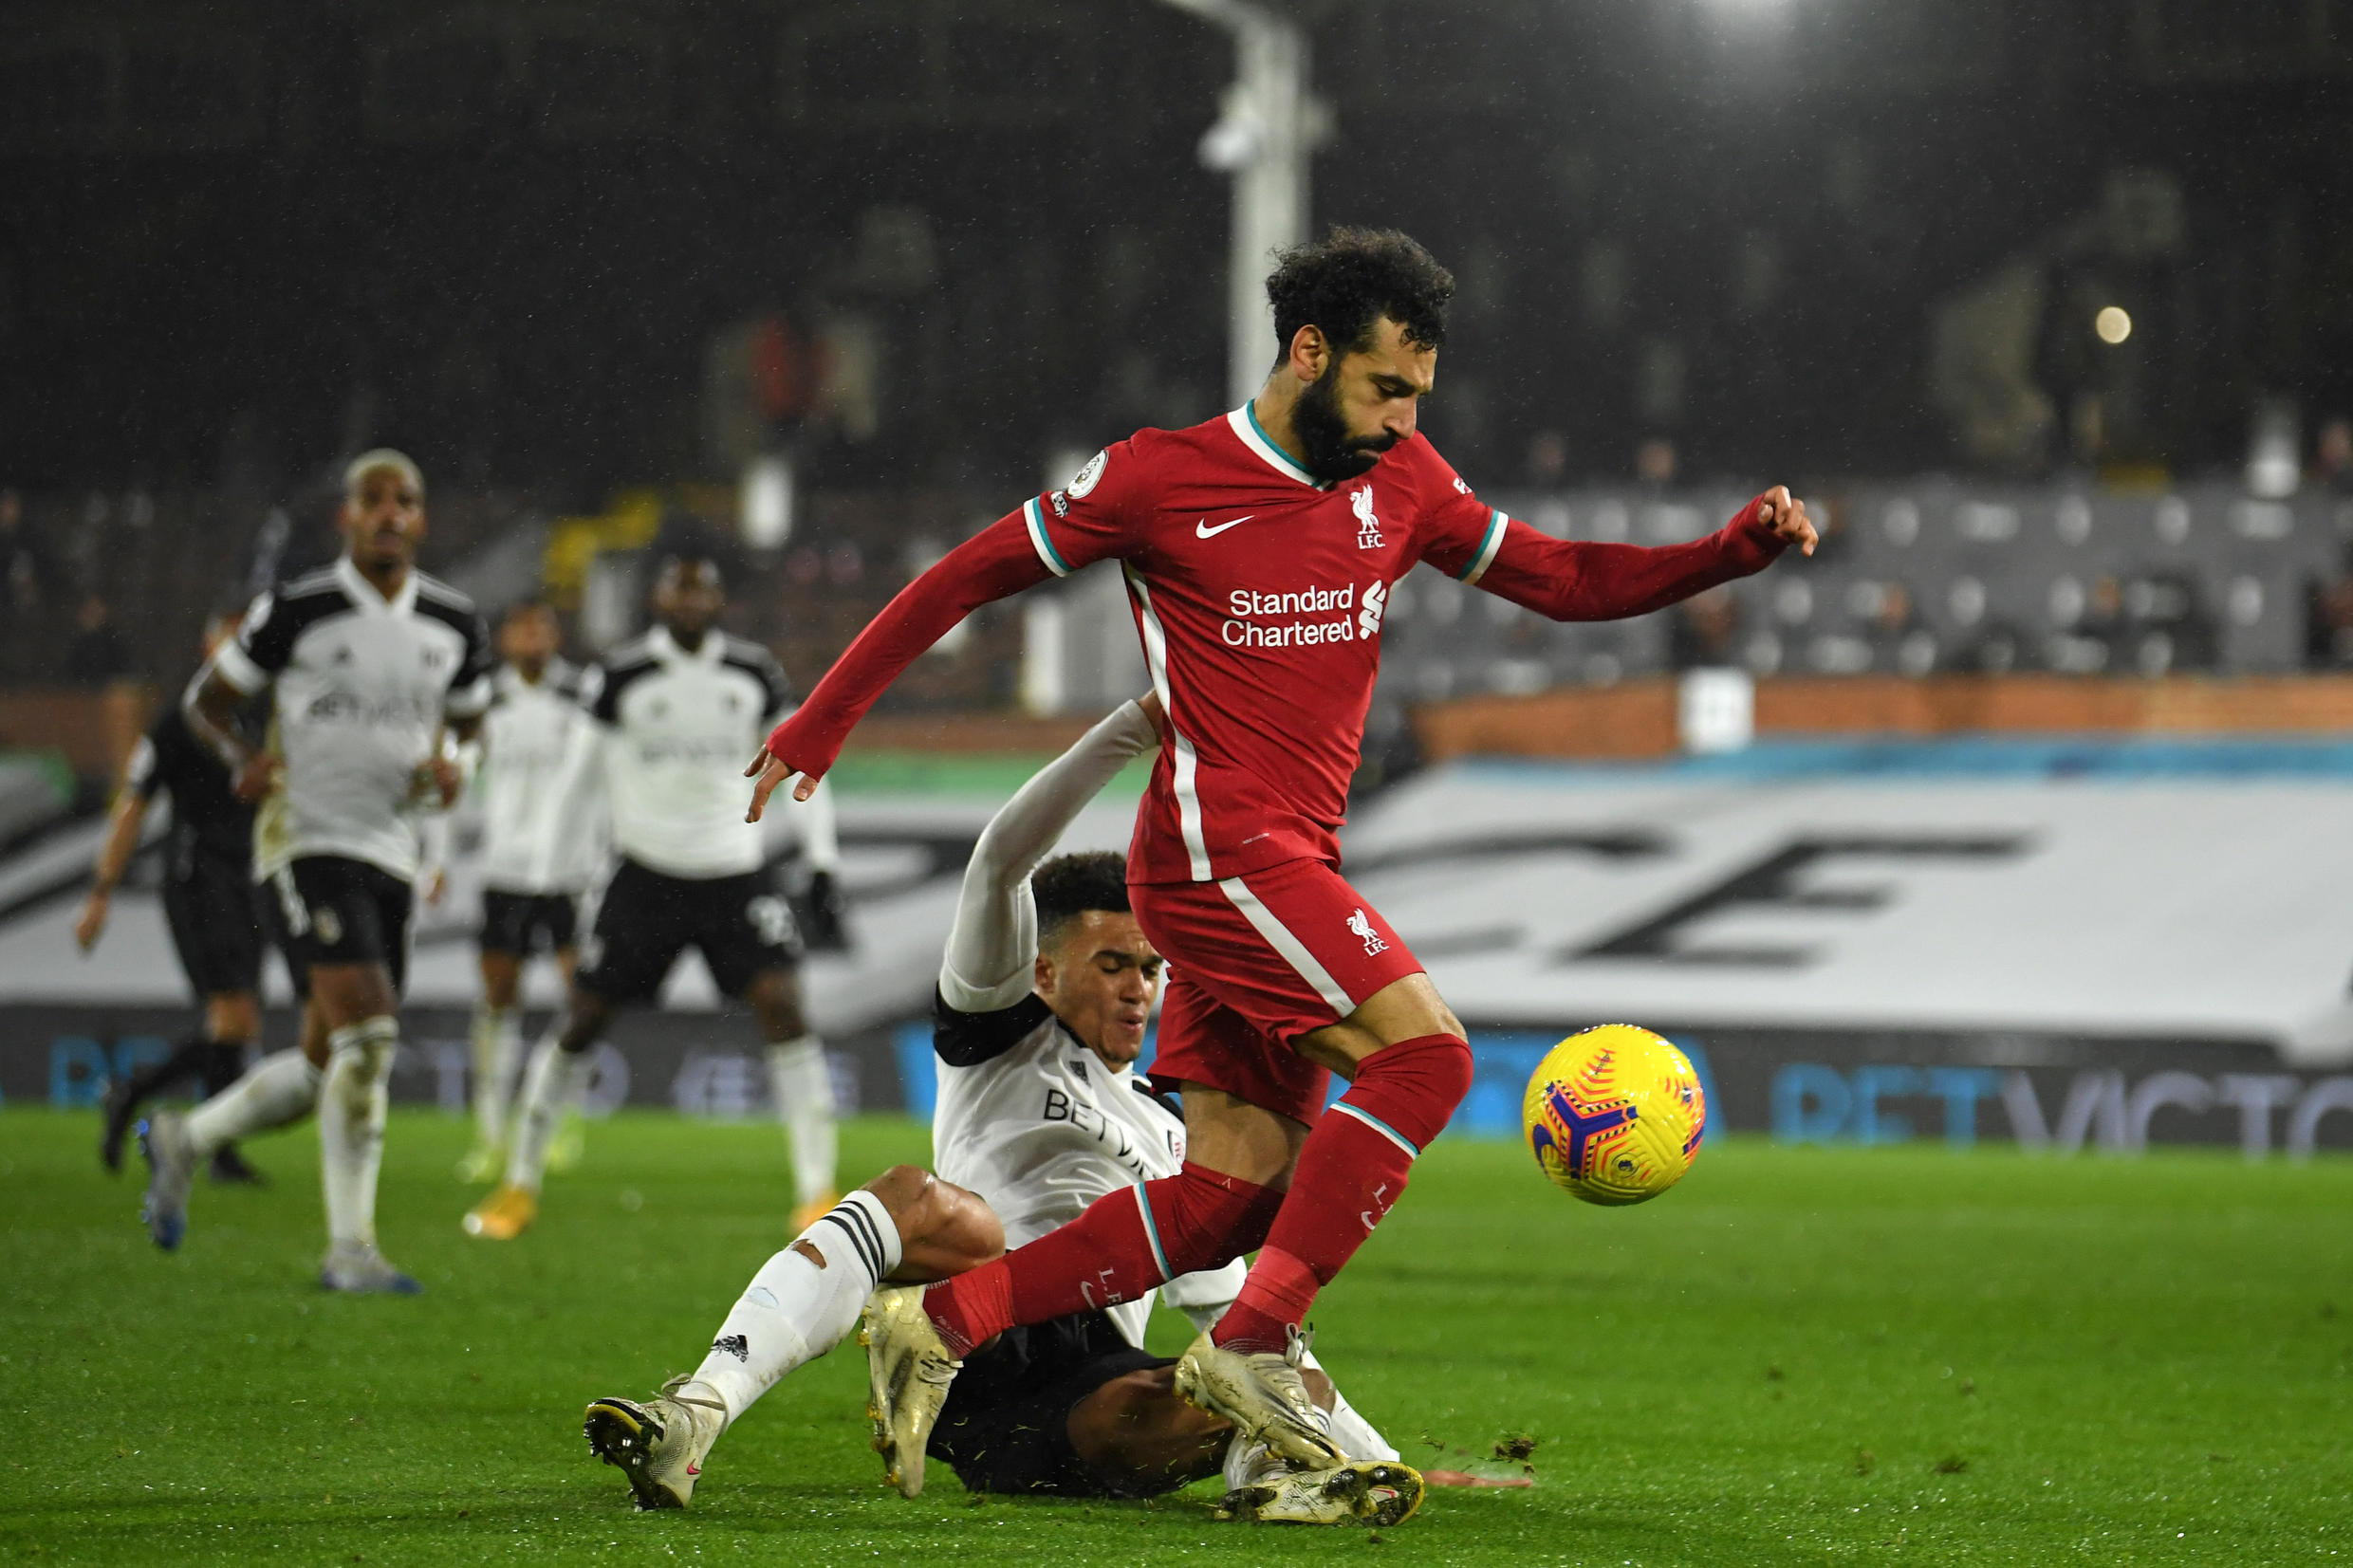 Liverpool's Mohamed Salah rescued a draw at Fulham